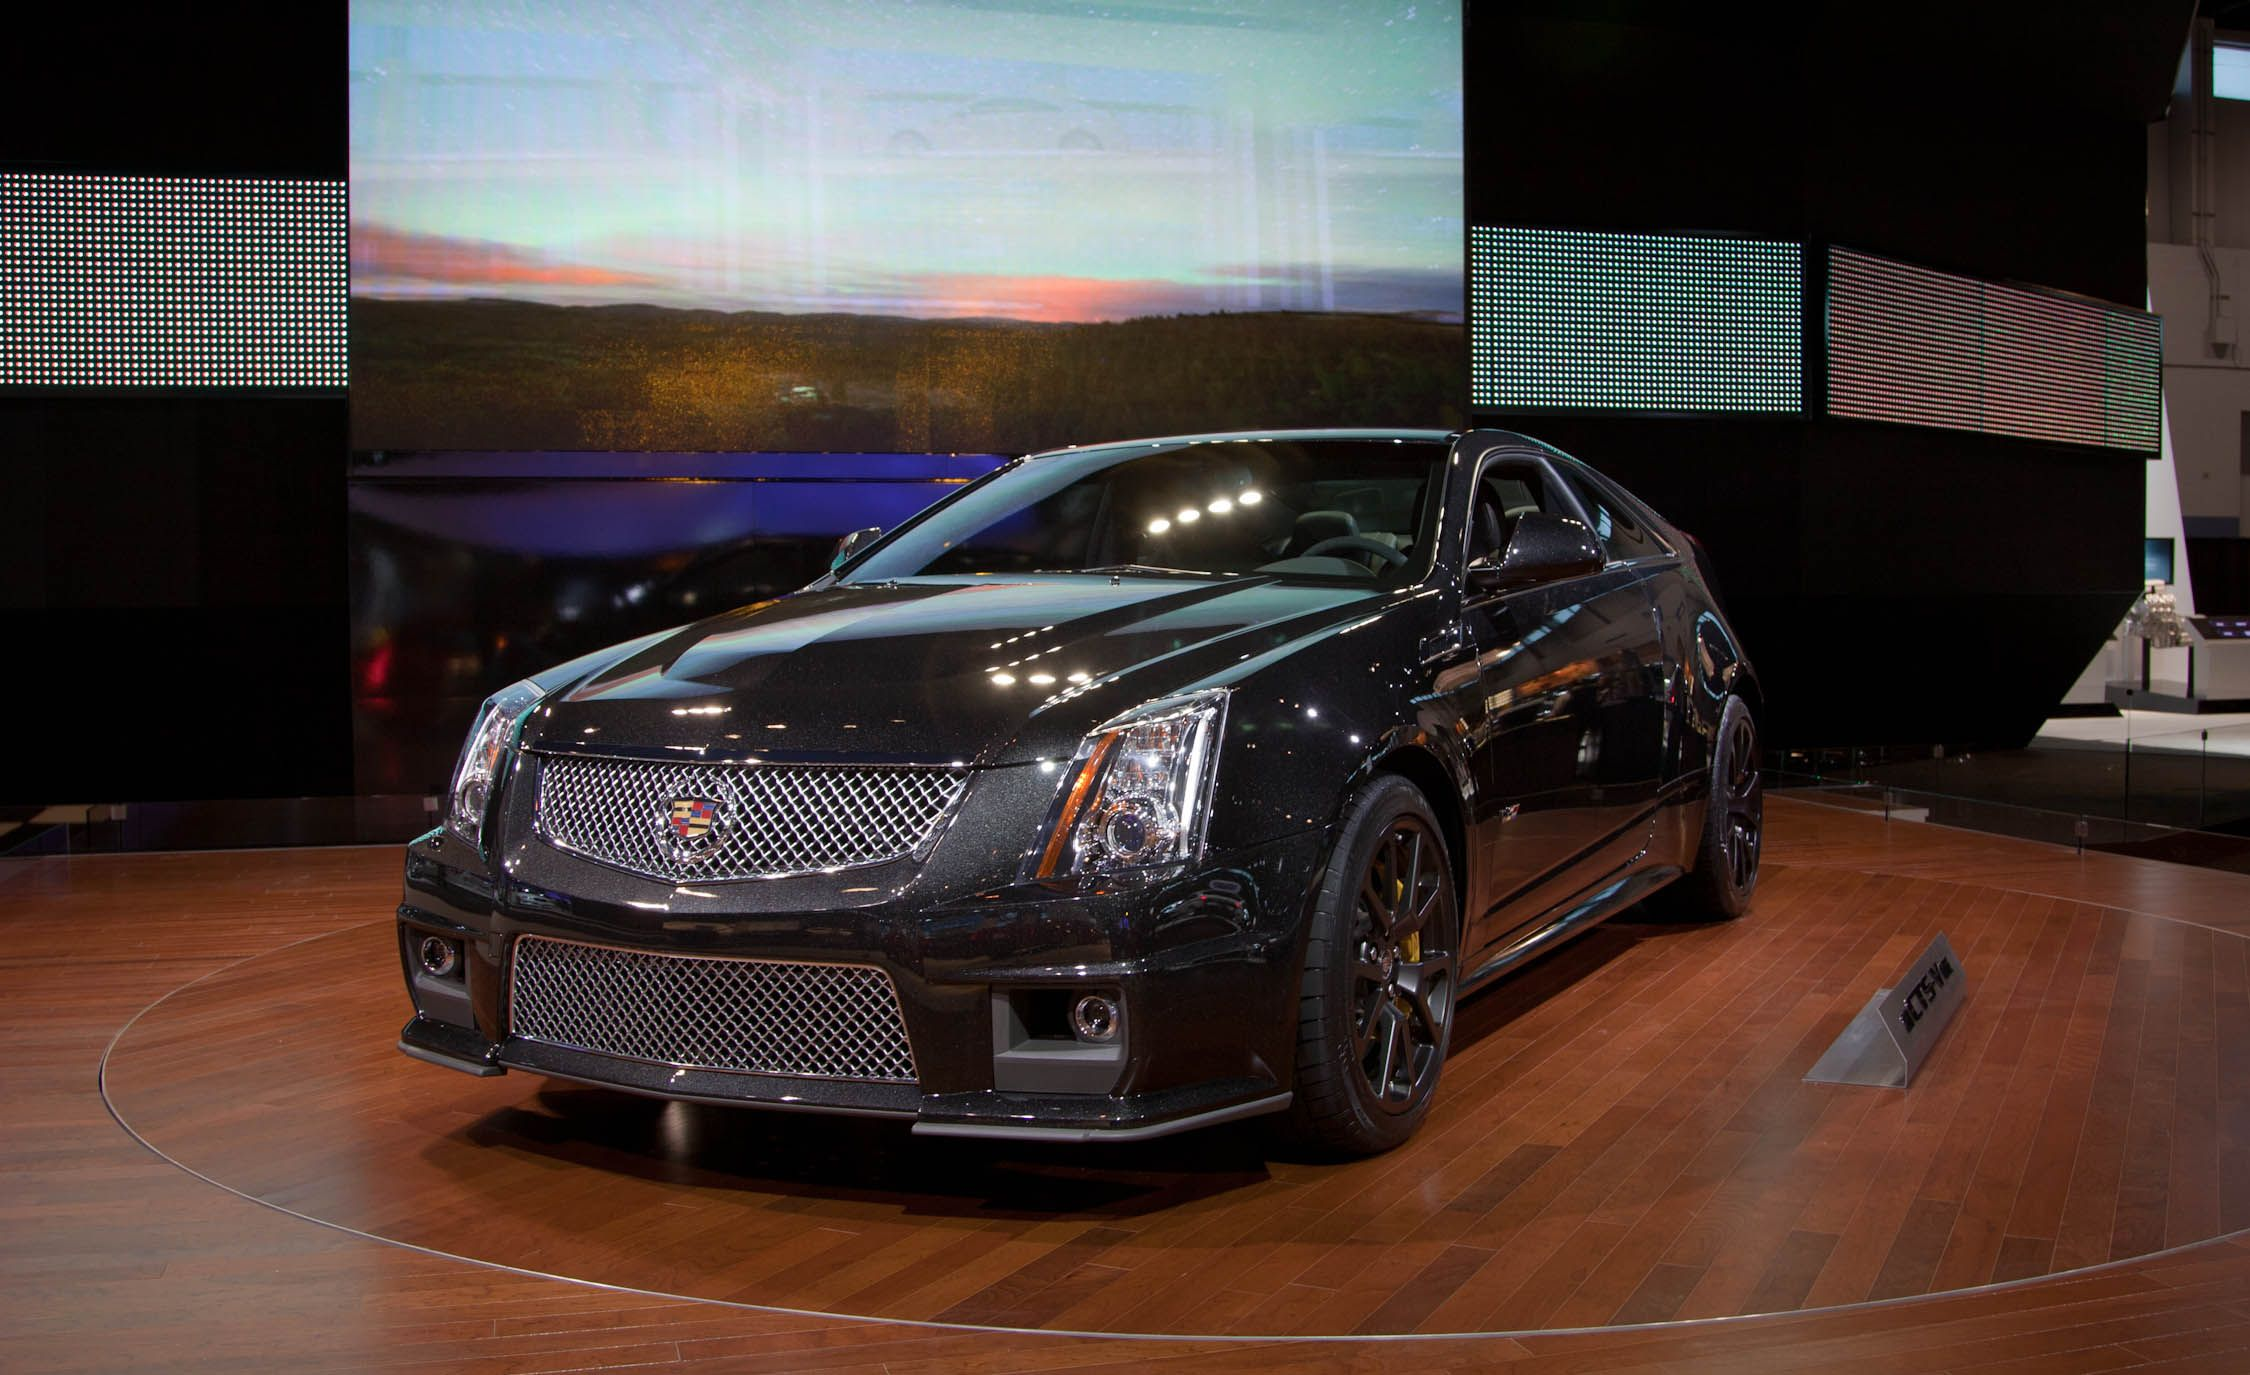 sale for would cts of v image or wagon car you cadillac coupe sedan download door rather updates